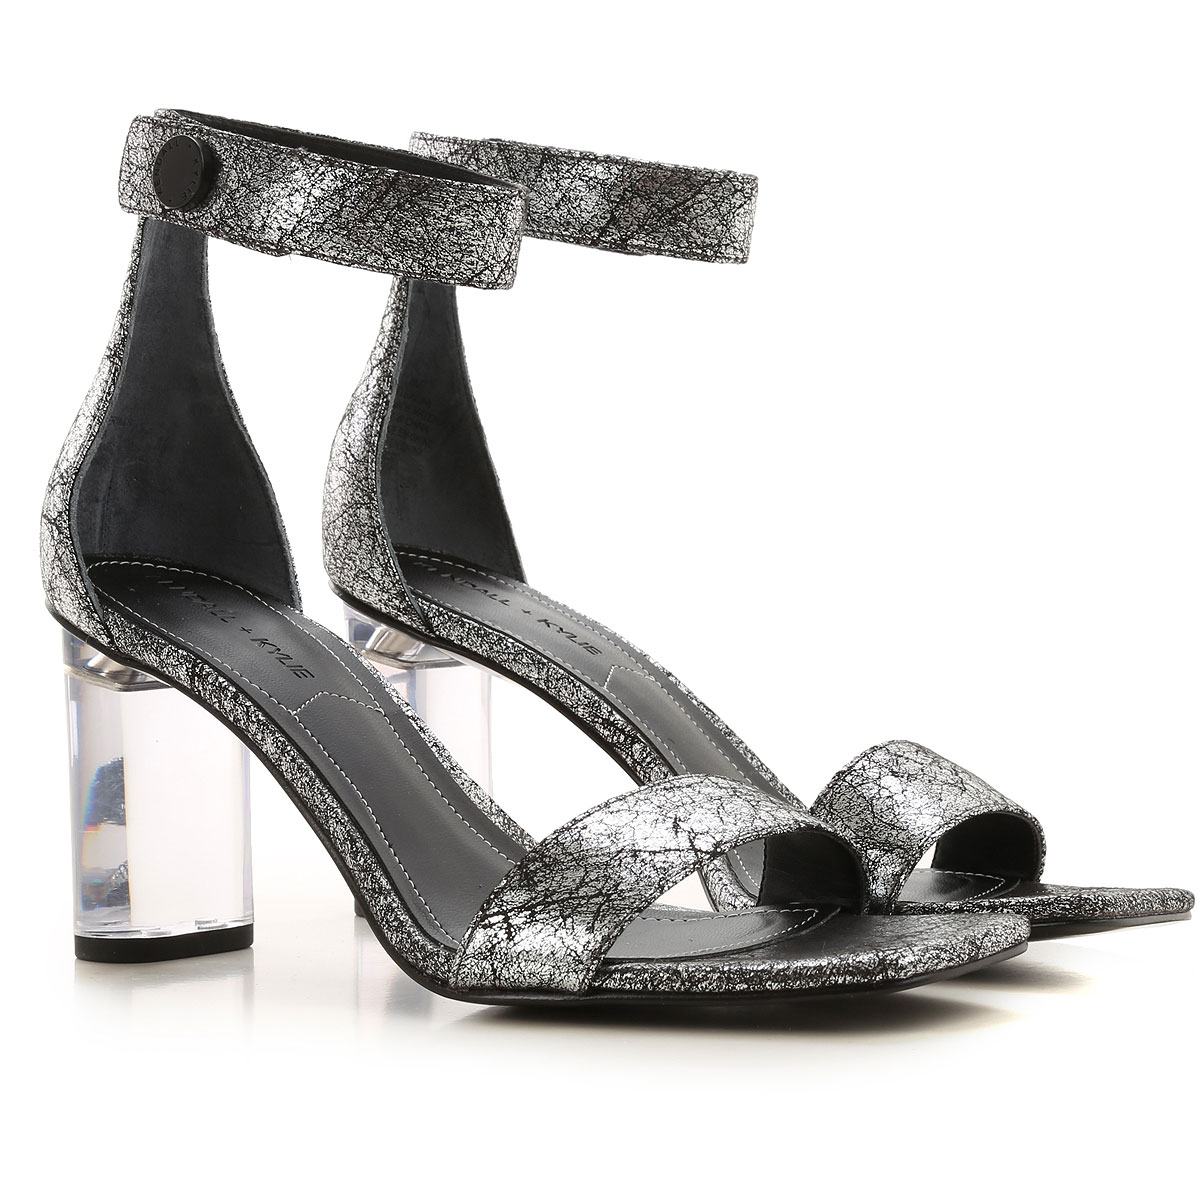 Kendall Kylie Sandals for Women On Sale in Outlet, Silver, Synthetic Fiber, 2019, 6 6.5 8.5 9